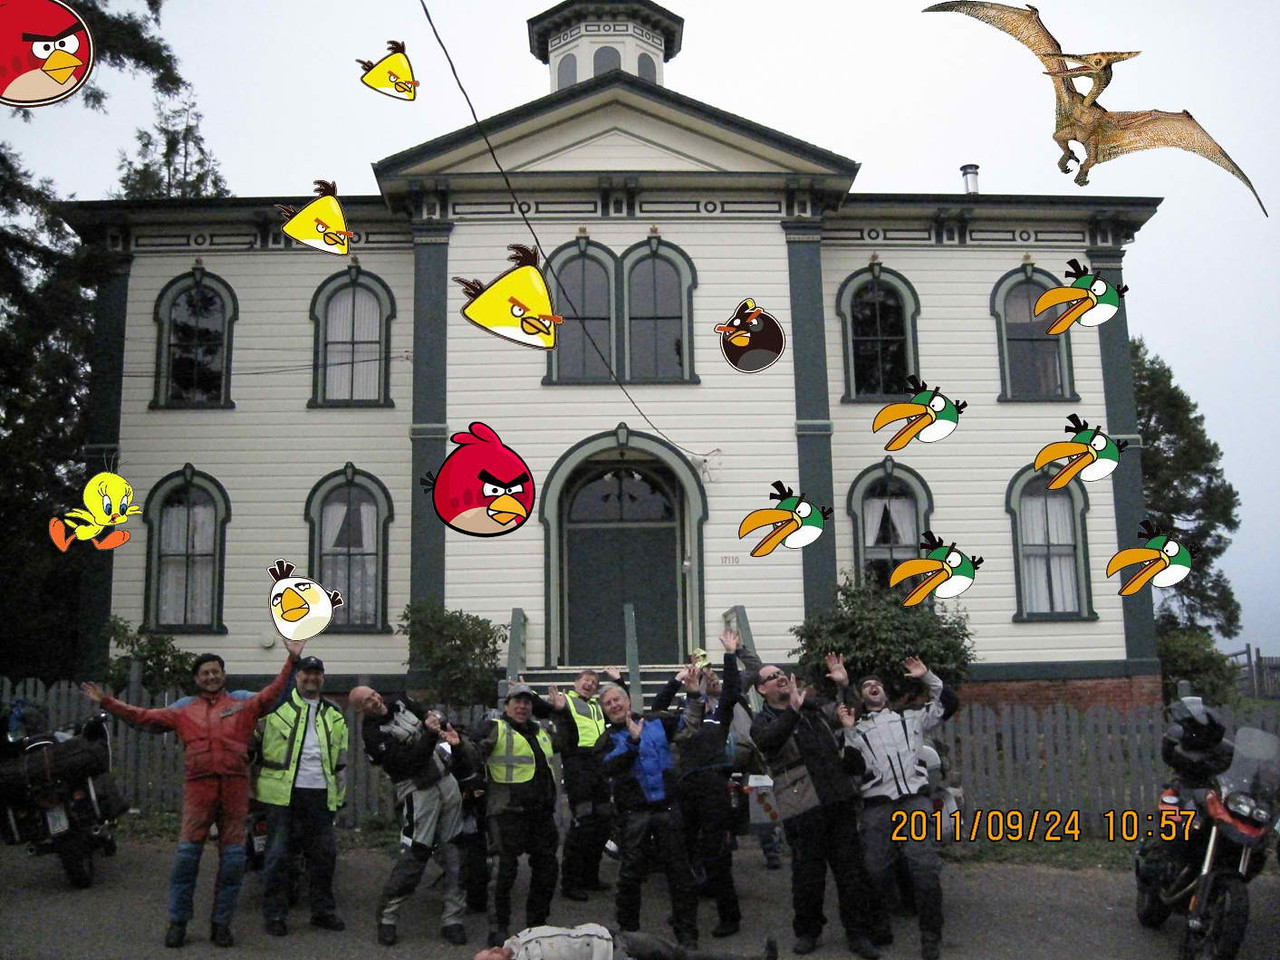 The stop at Potters Schoolhouse turned angry when the birds showed up. (Photo: Lee Blake)